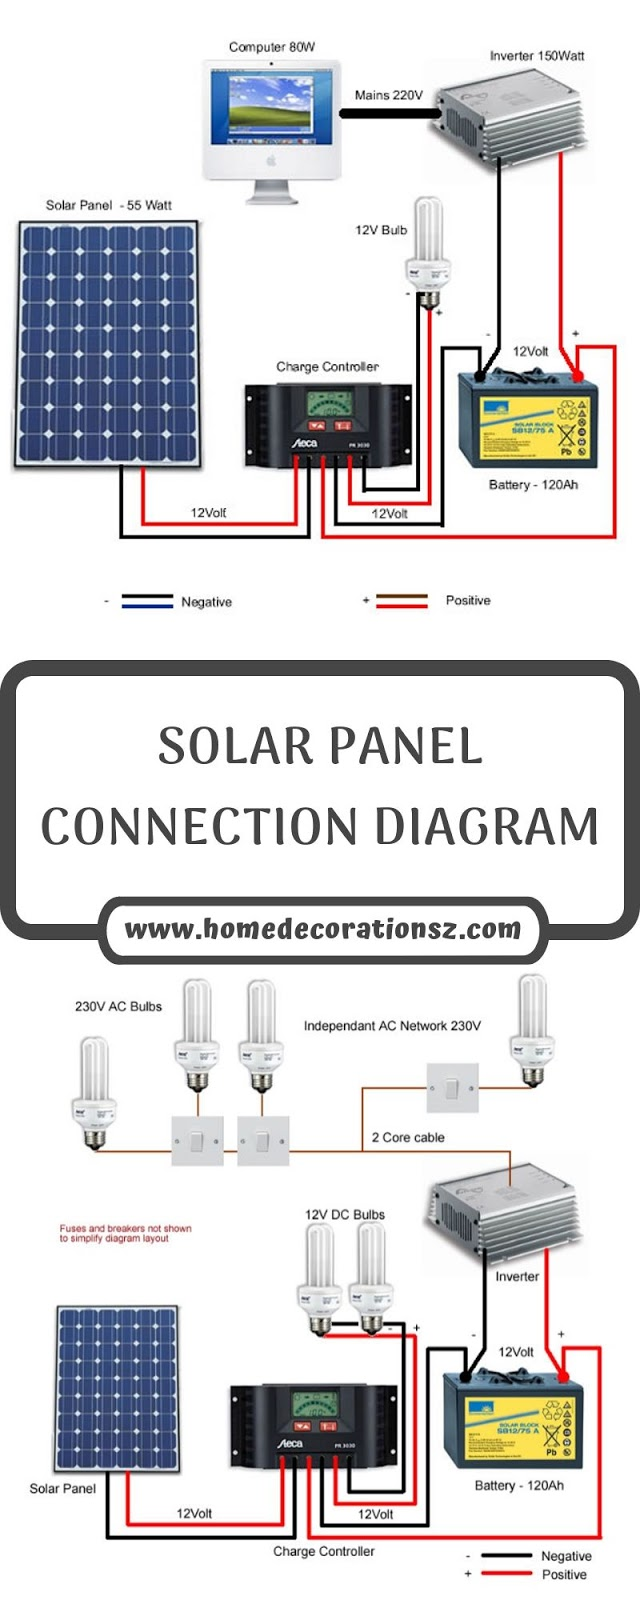 SOLAR PANEL CONNECTION DIAGRAM